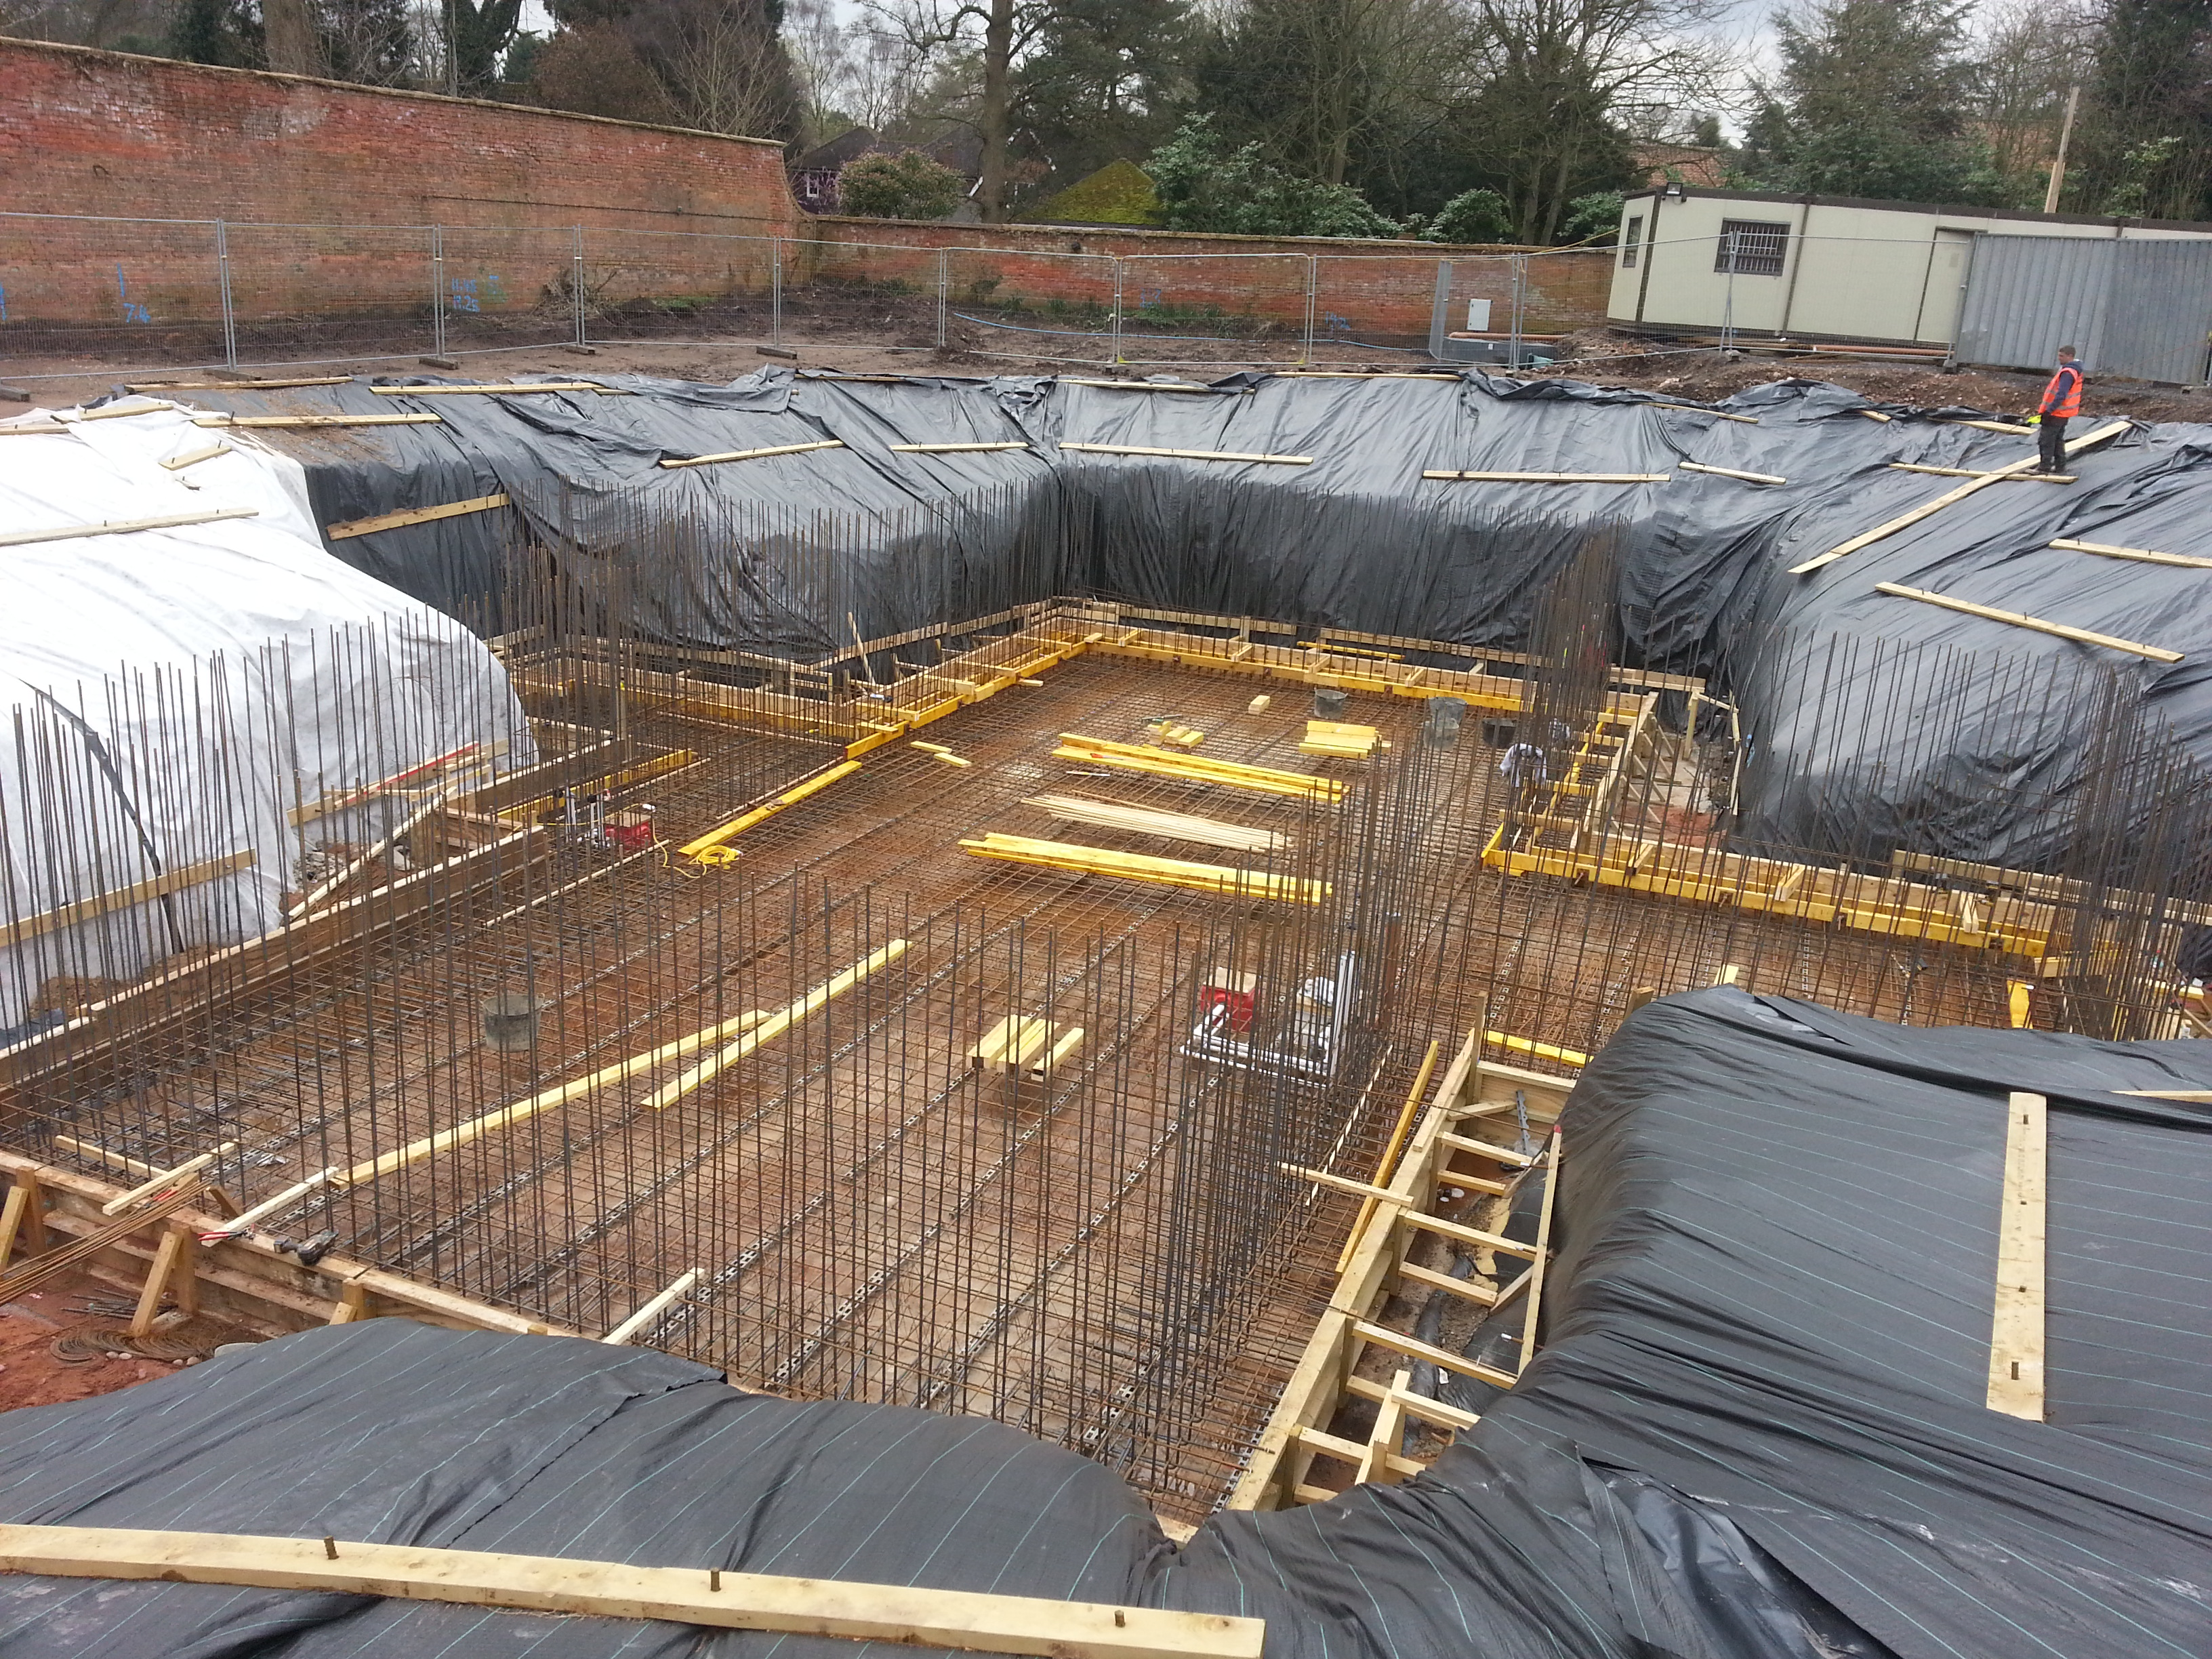 Kicker construction to give better waterproofing